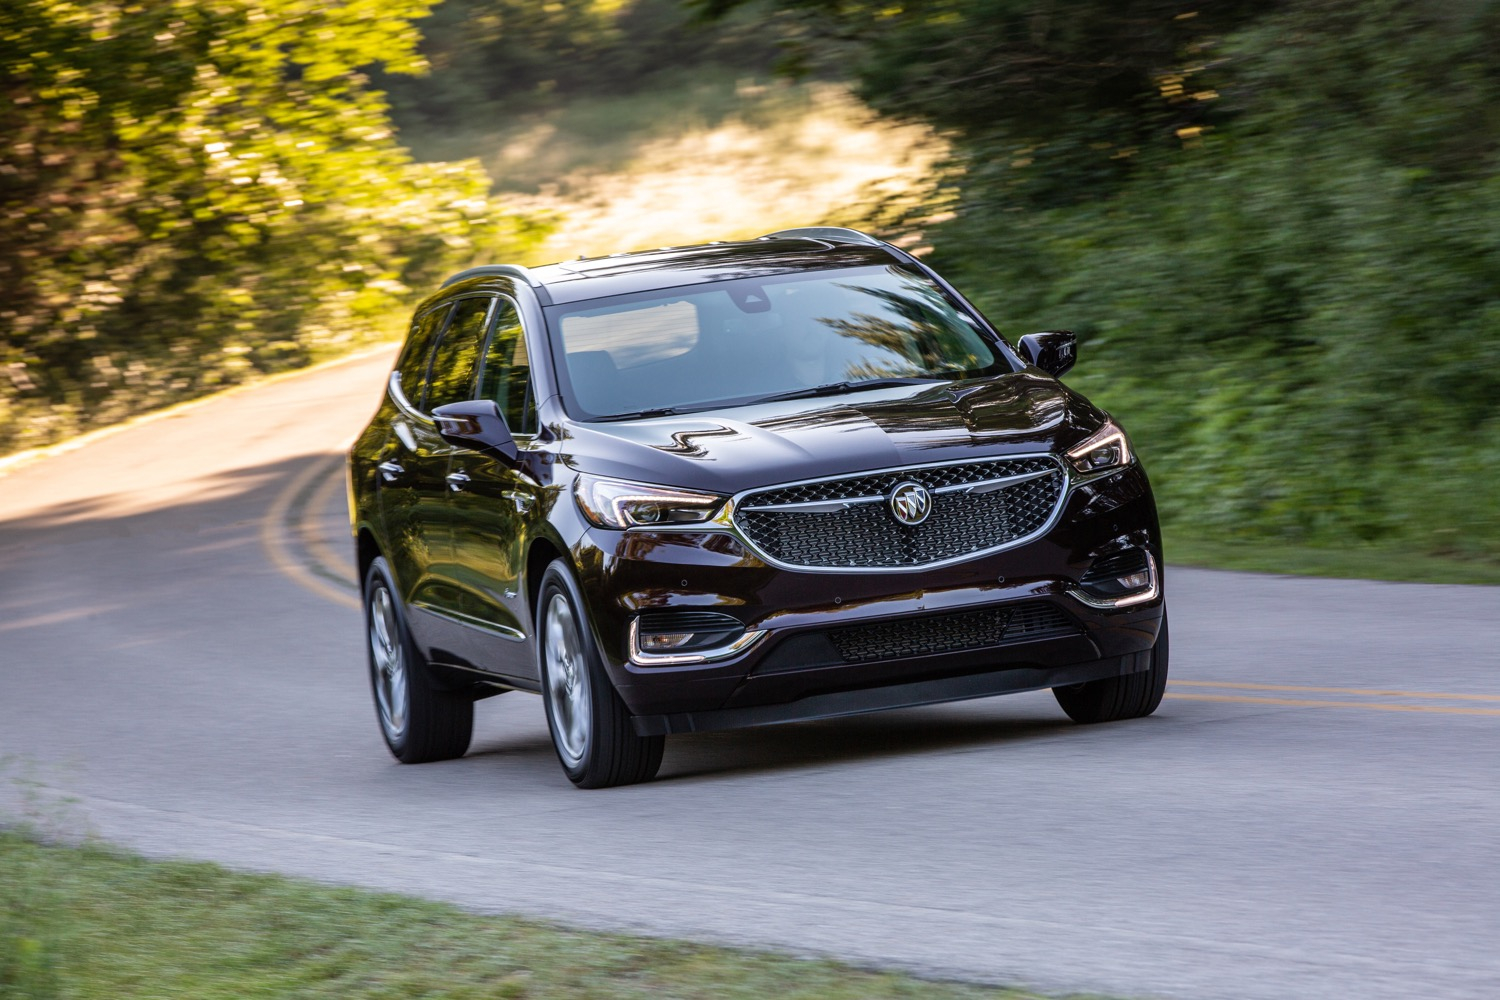 Gm Needs To Revive The Buick Avenir Sub-Brand | Gm Authority New 2022 Buick Encore Oil Capacity, Owner's Manual, Color Options